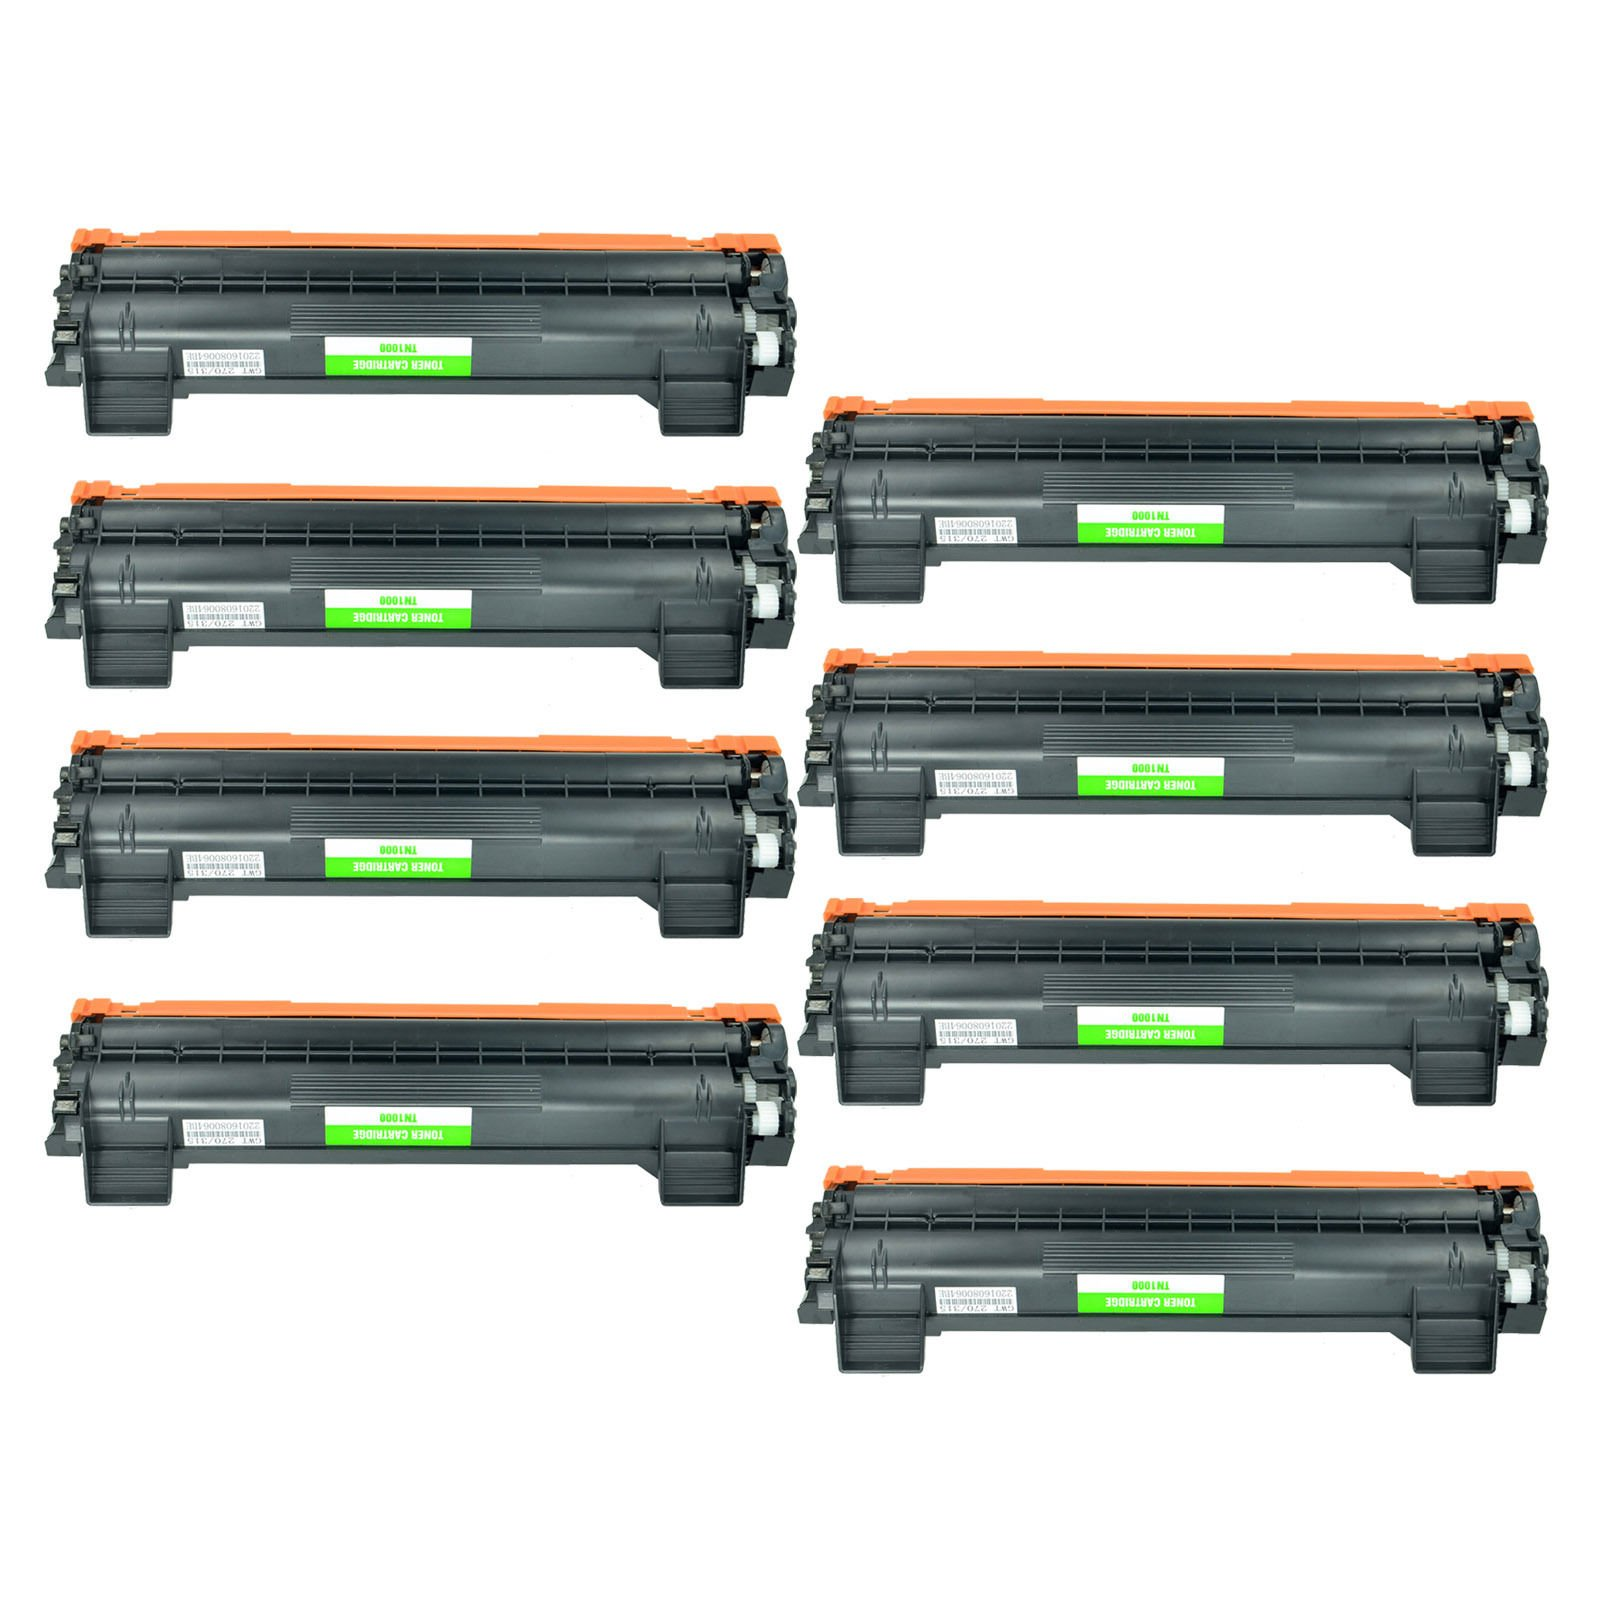 Febe New Compatible TN1000 Toner Cartridge for Brother HL-1110 DCP-1510 MFC-1910W TN-1000 Printers – 8 Black